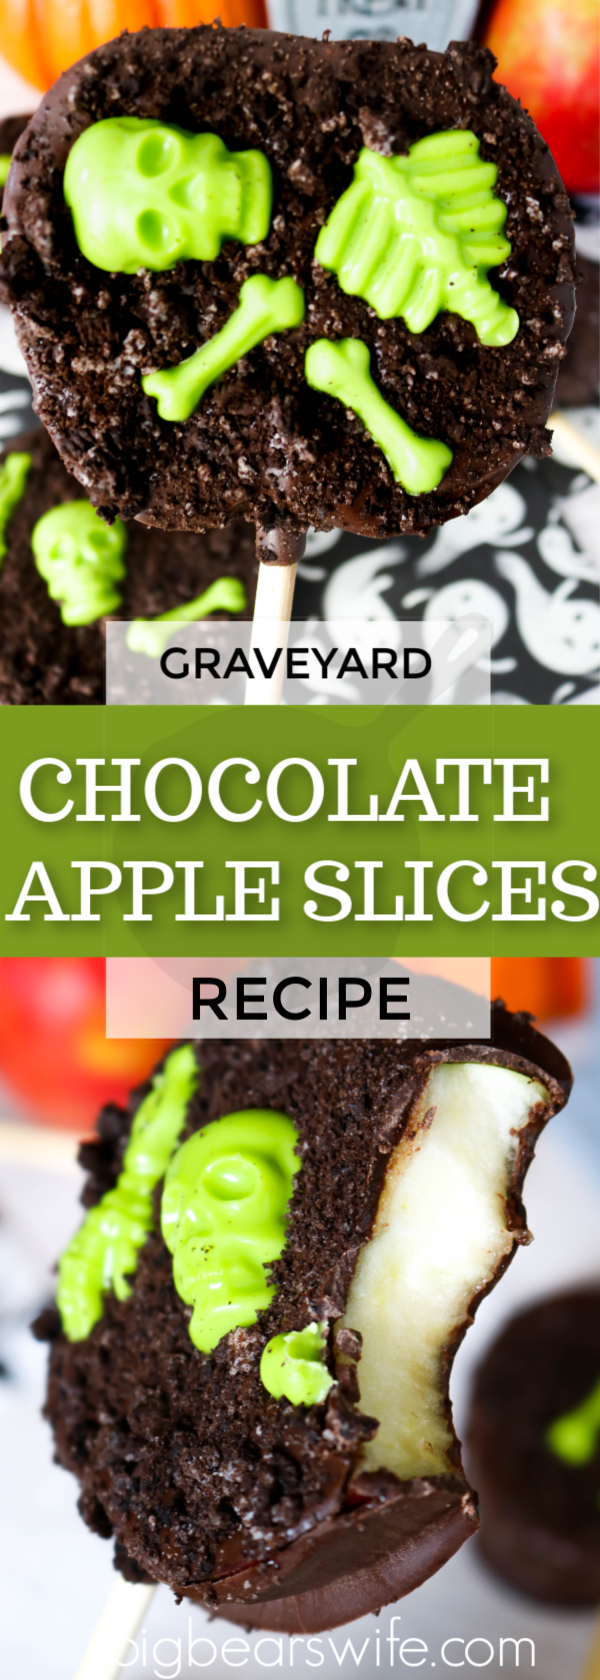 Melted chocolate and candy skeletons decorate fresh apple slices for a tasty Halloween treats that kids and adults will love!  You'll love how easy these Graveyard Chocolate Apple Slices are to make and decorate too!  #halloweendesserts #graveyarddesserts